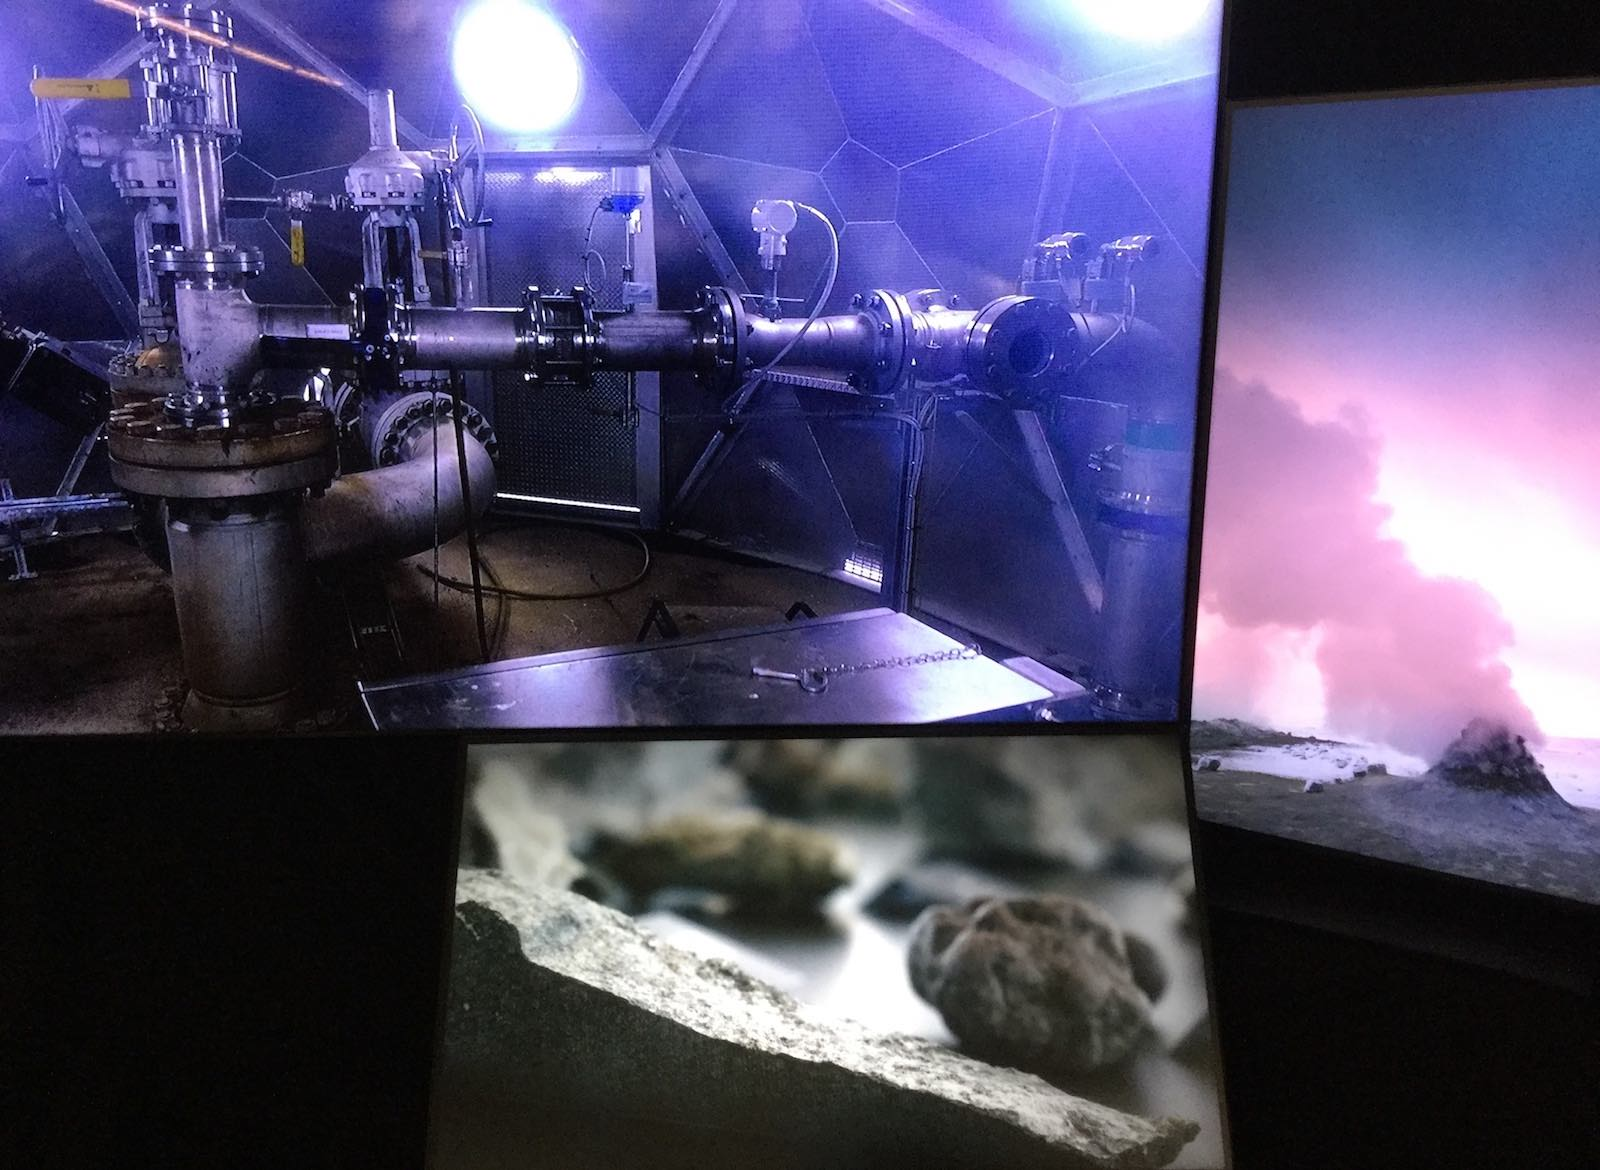 Installation view of the video triptych, Deutsches Museum, Munich, October 2018, as part of the exhibition  (Um)weltschmerz: An Exercise in Humility and Melancholia .